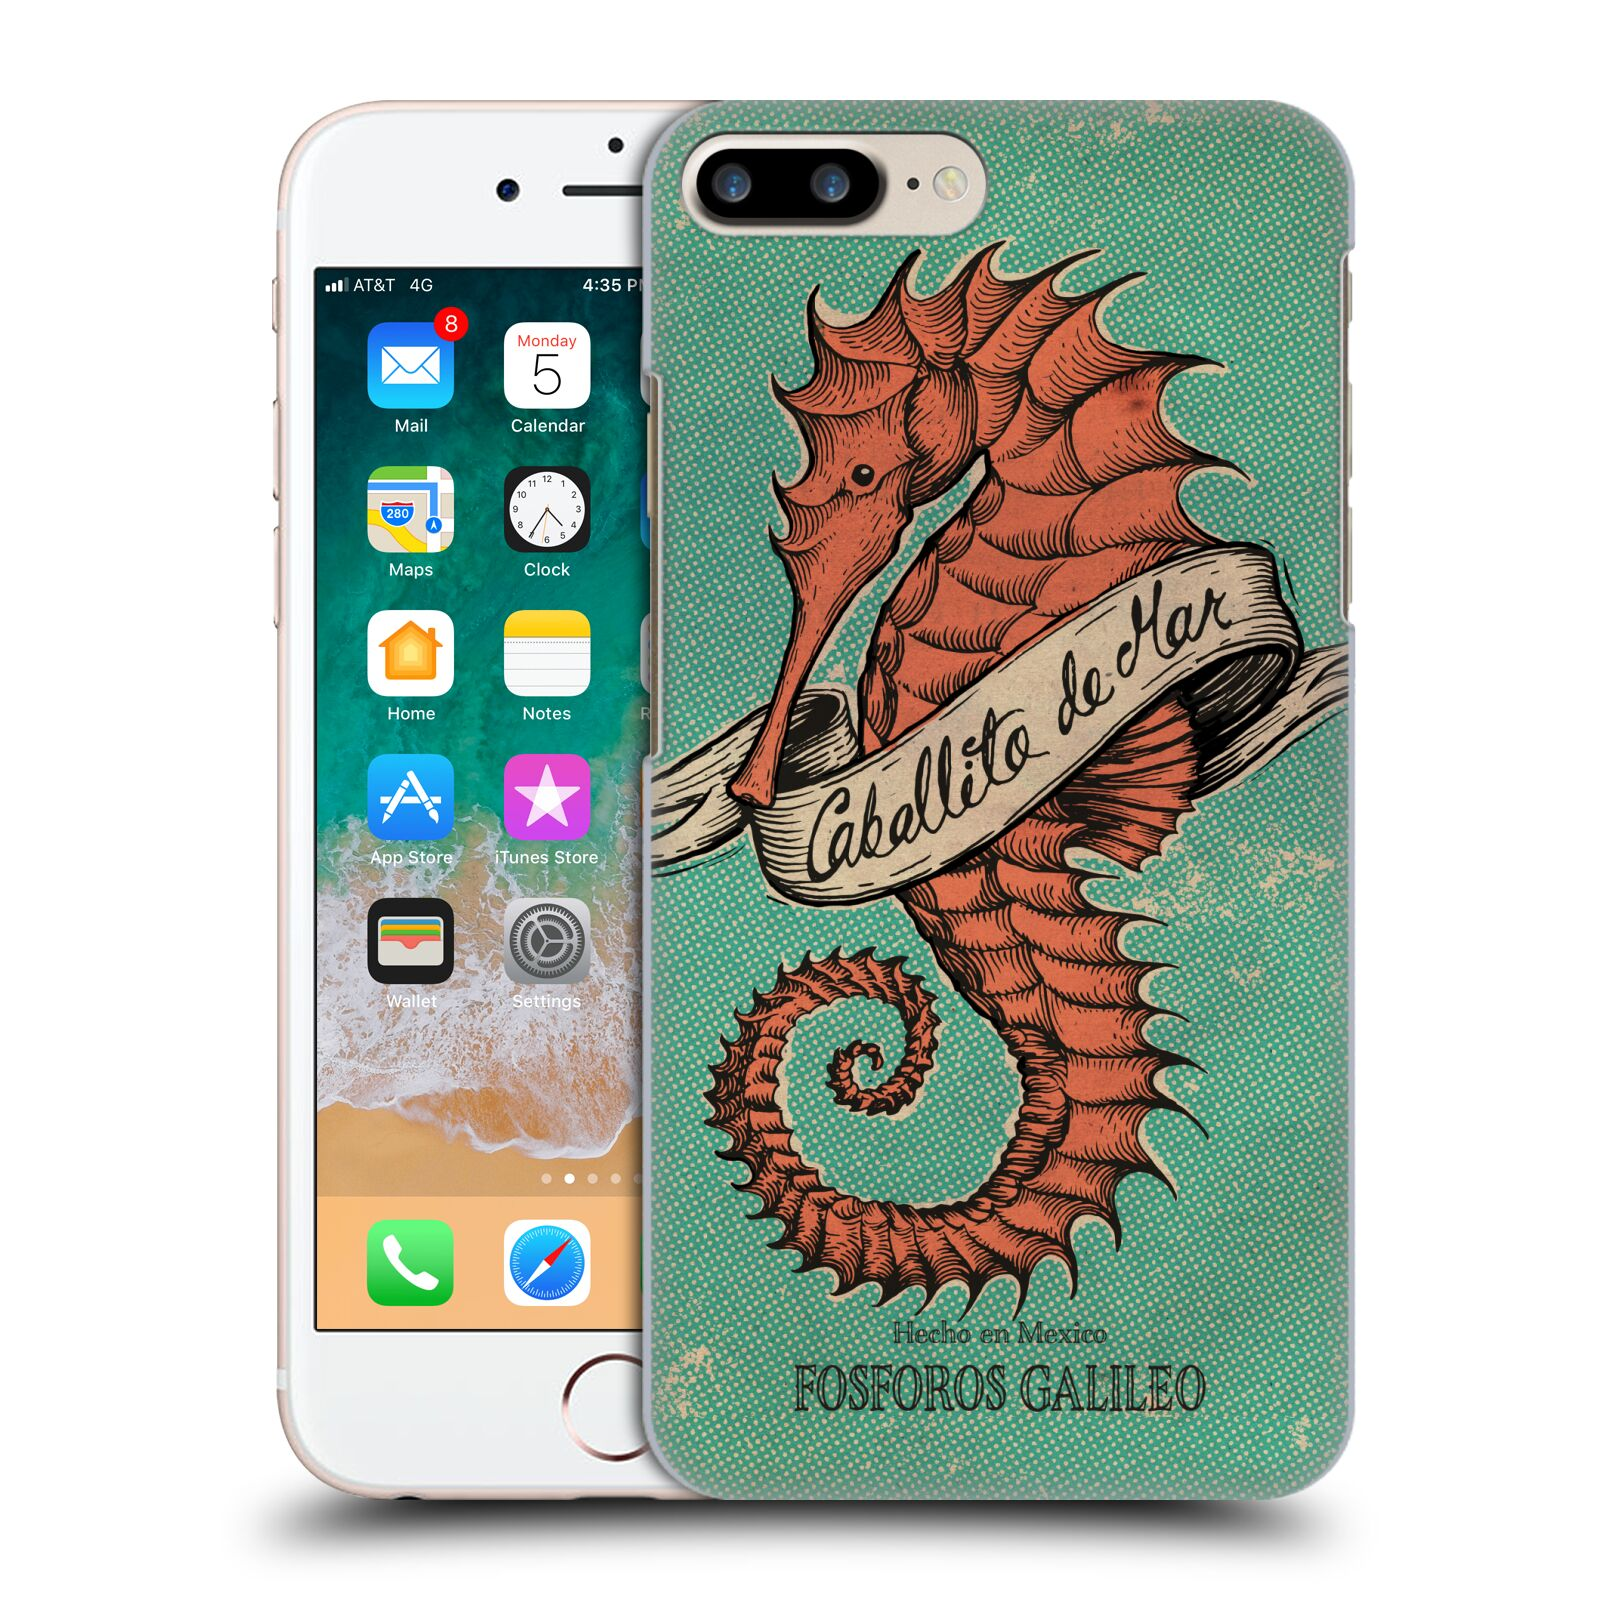 Official Fosforos Galileo Diseños Caballito De Mar Case for Apple iPhone 7 Plus / iPhone 8 Plus